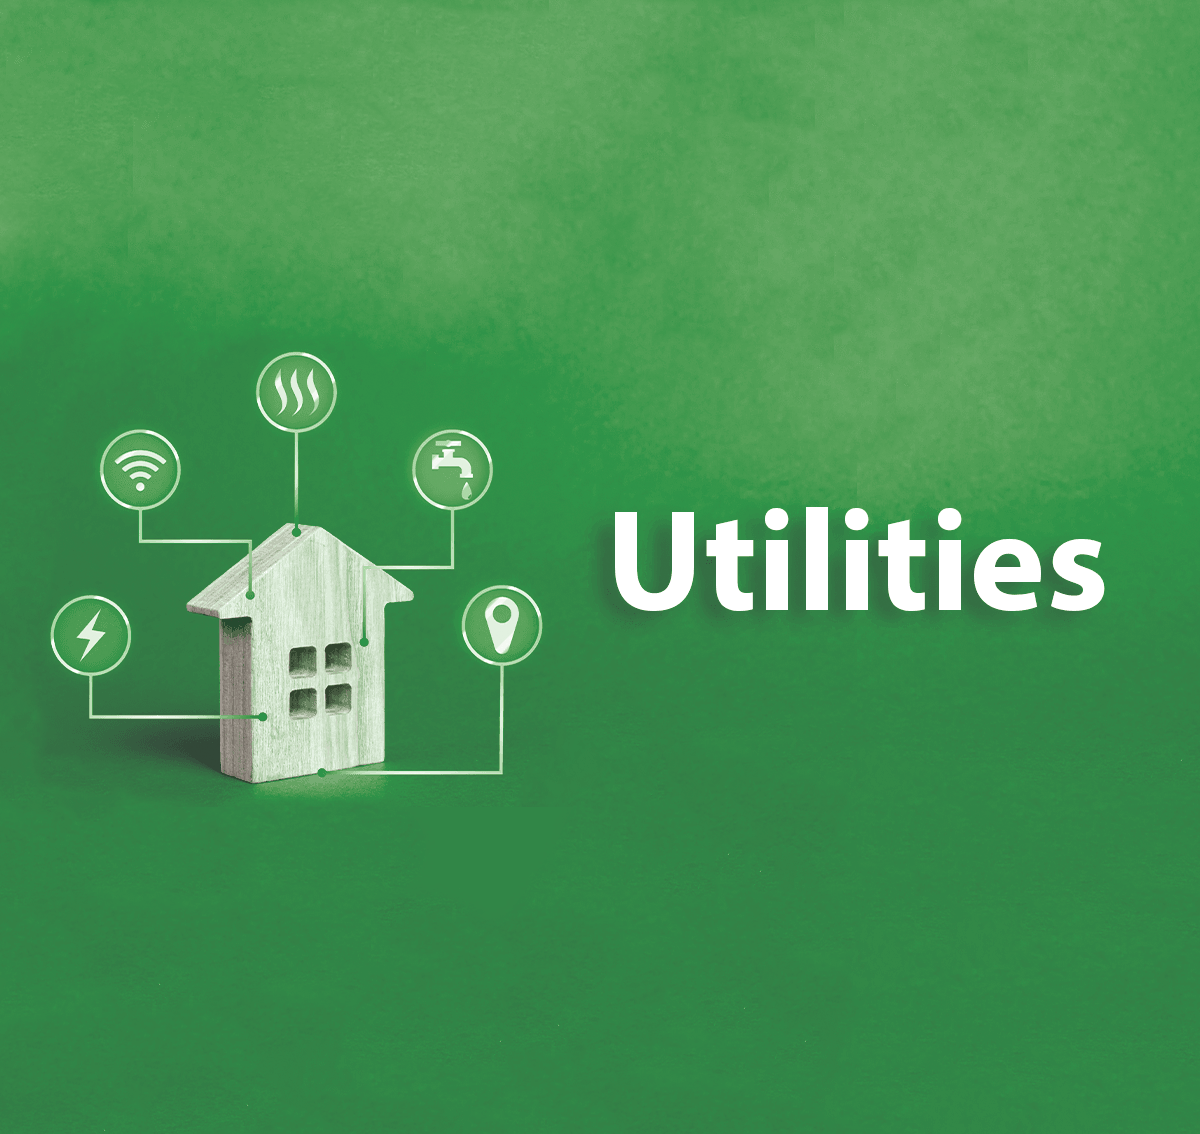 Green Utilities Toy House Graphic and Social Post